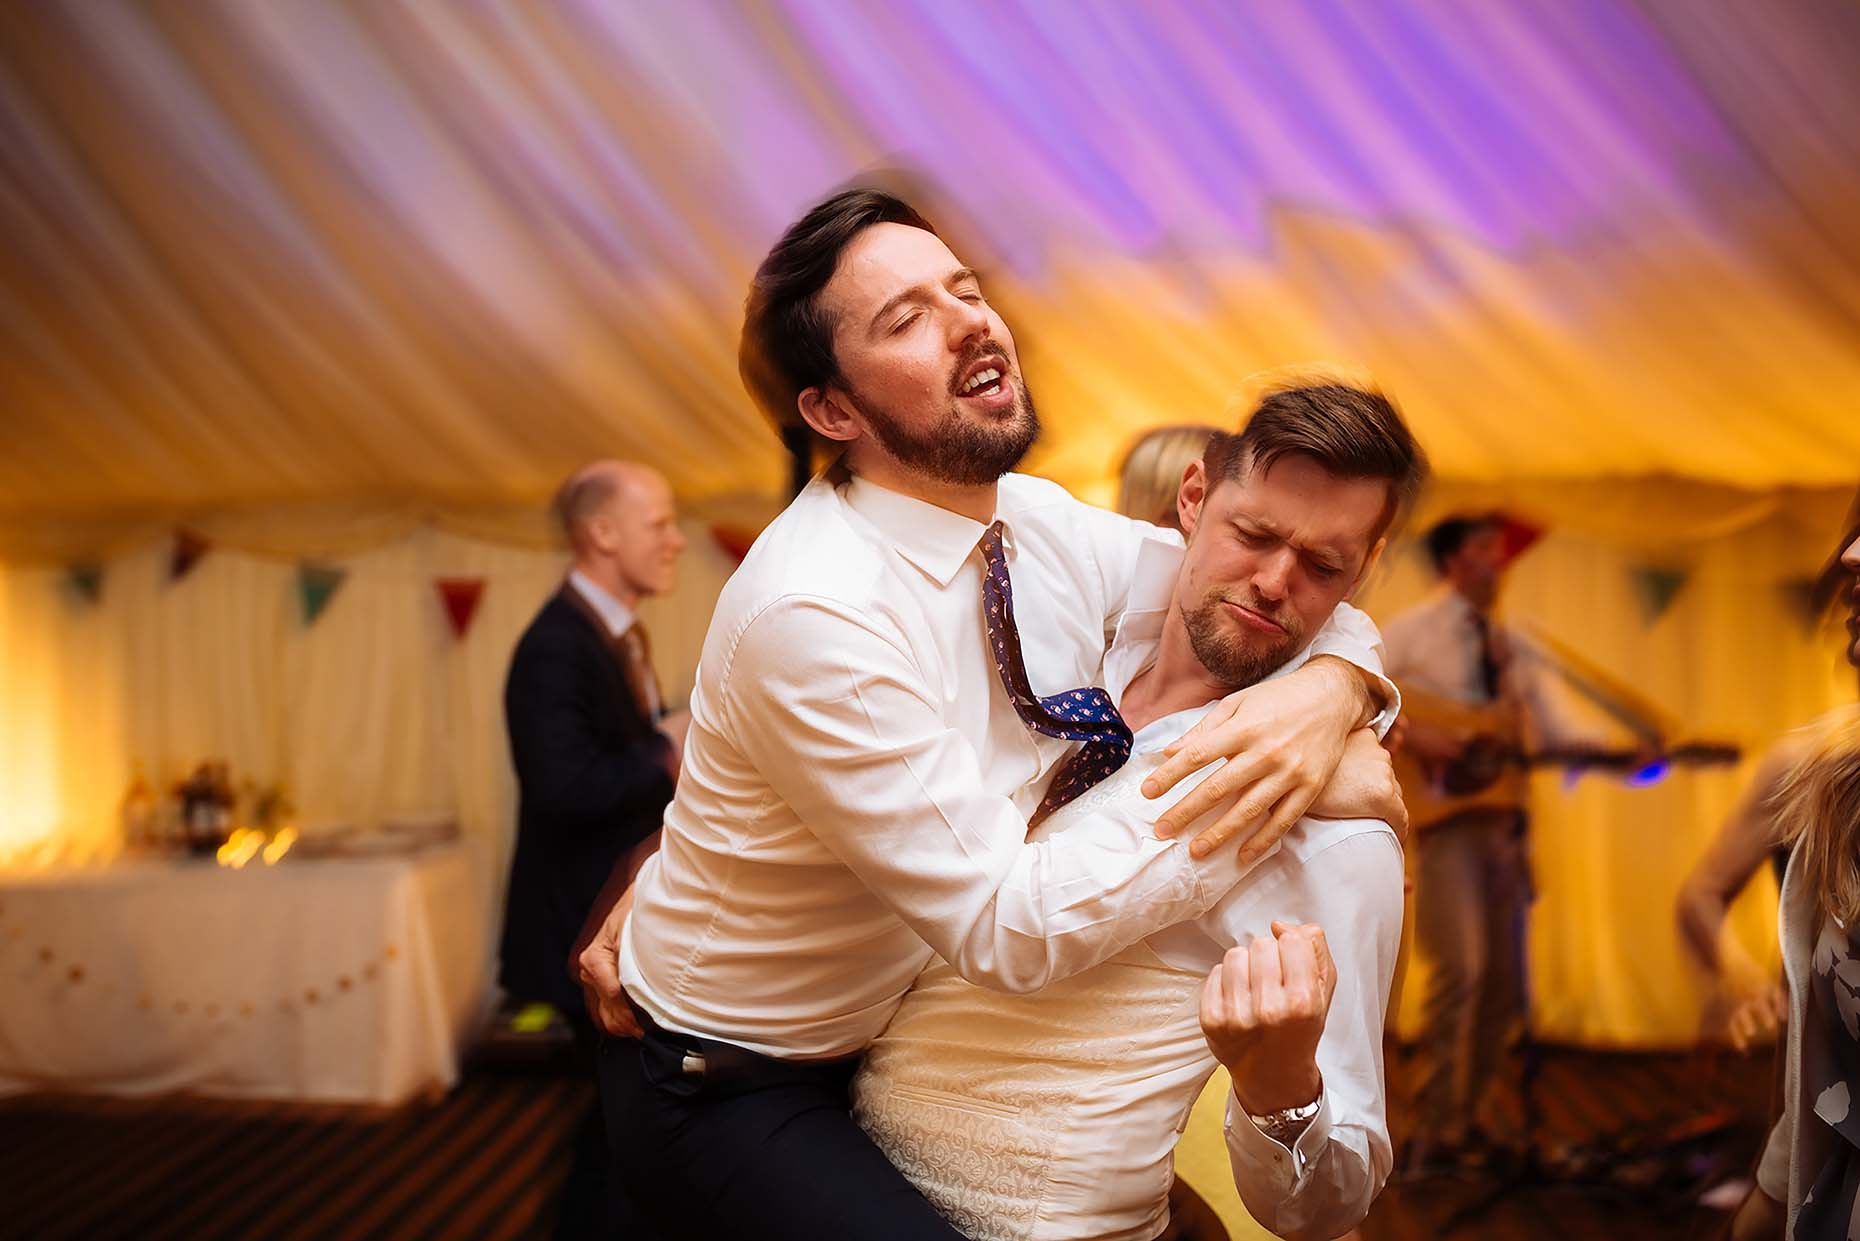 dancefloor-southover-house-dorset-wedding-photographer-bromance-fist-pump-34